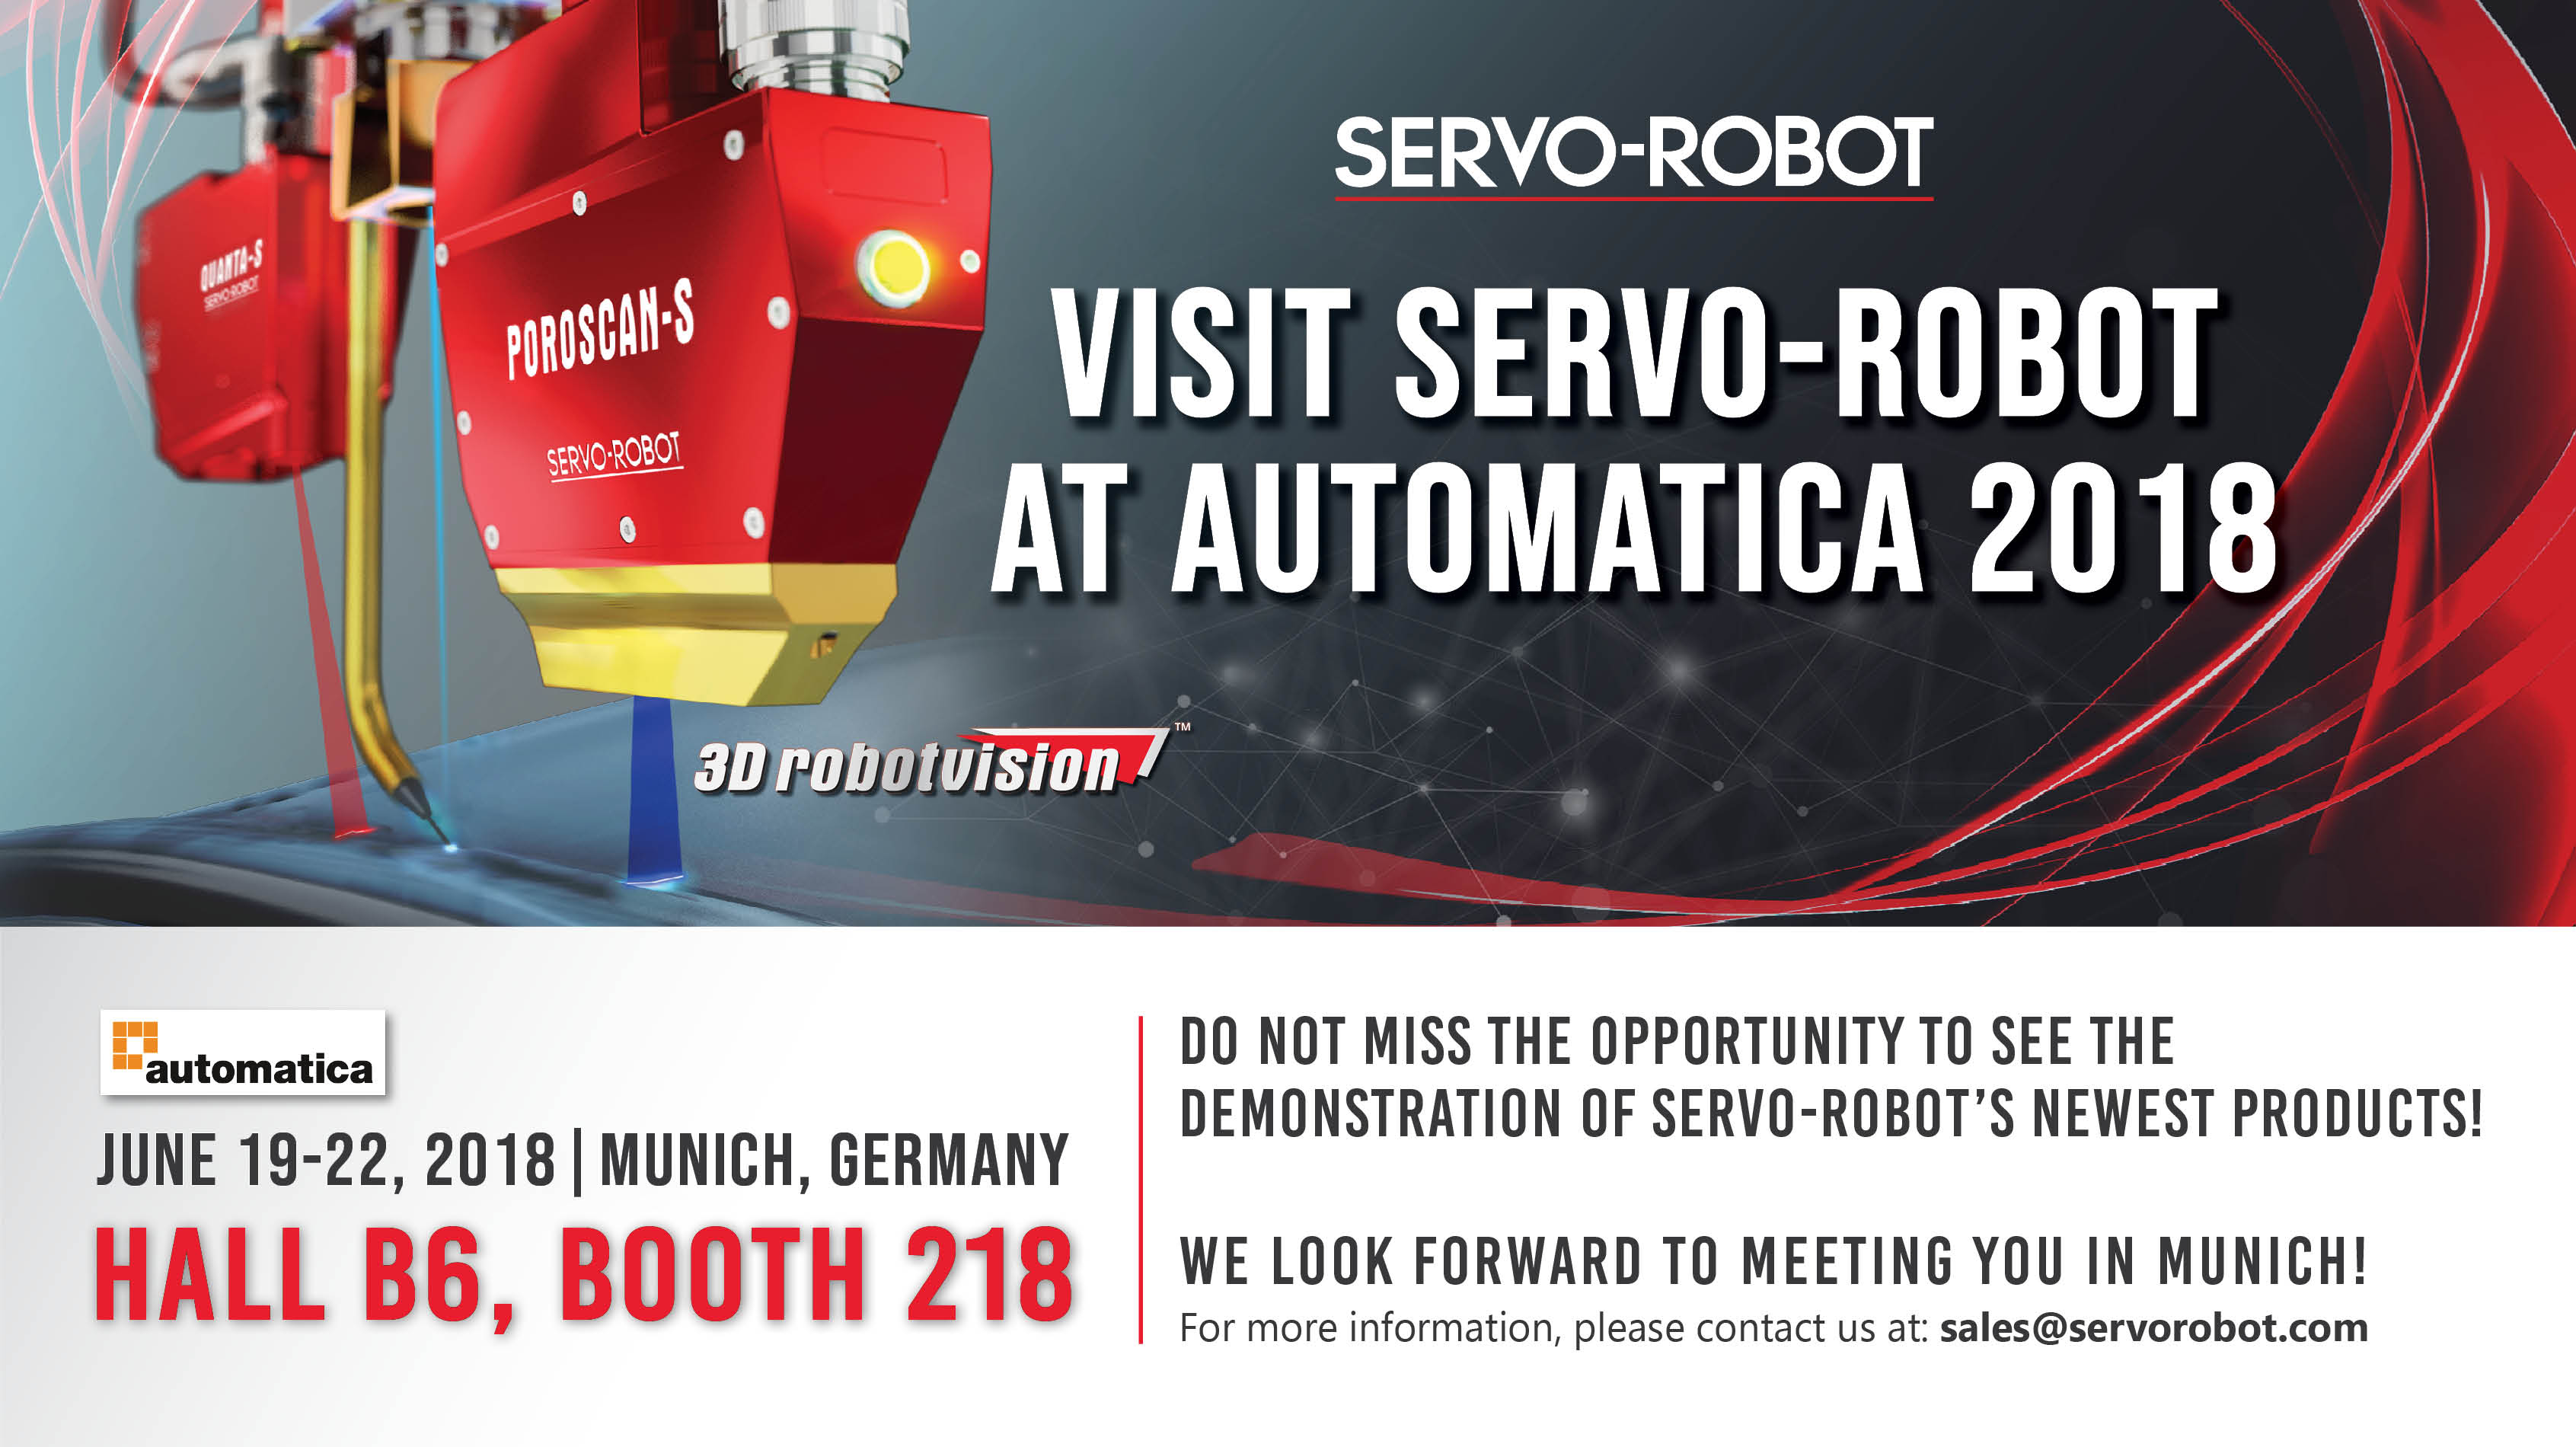 Visit SERVO-ROBOT at AUTOMATICA 2018 in Munich, Germany